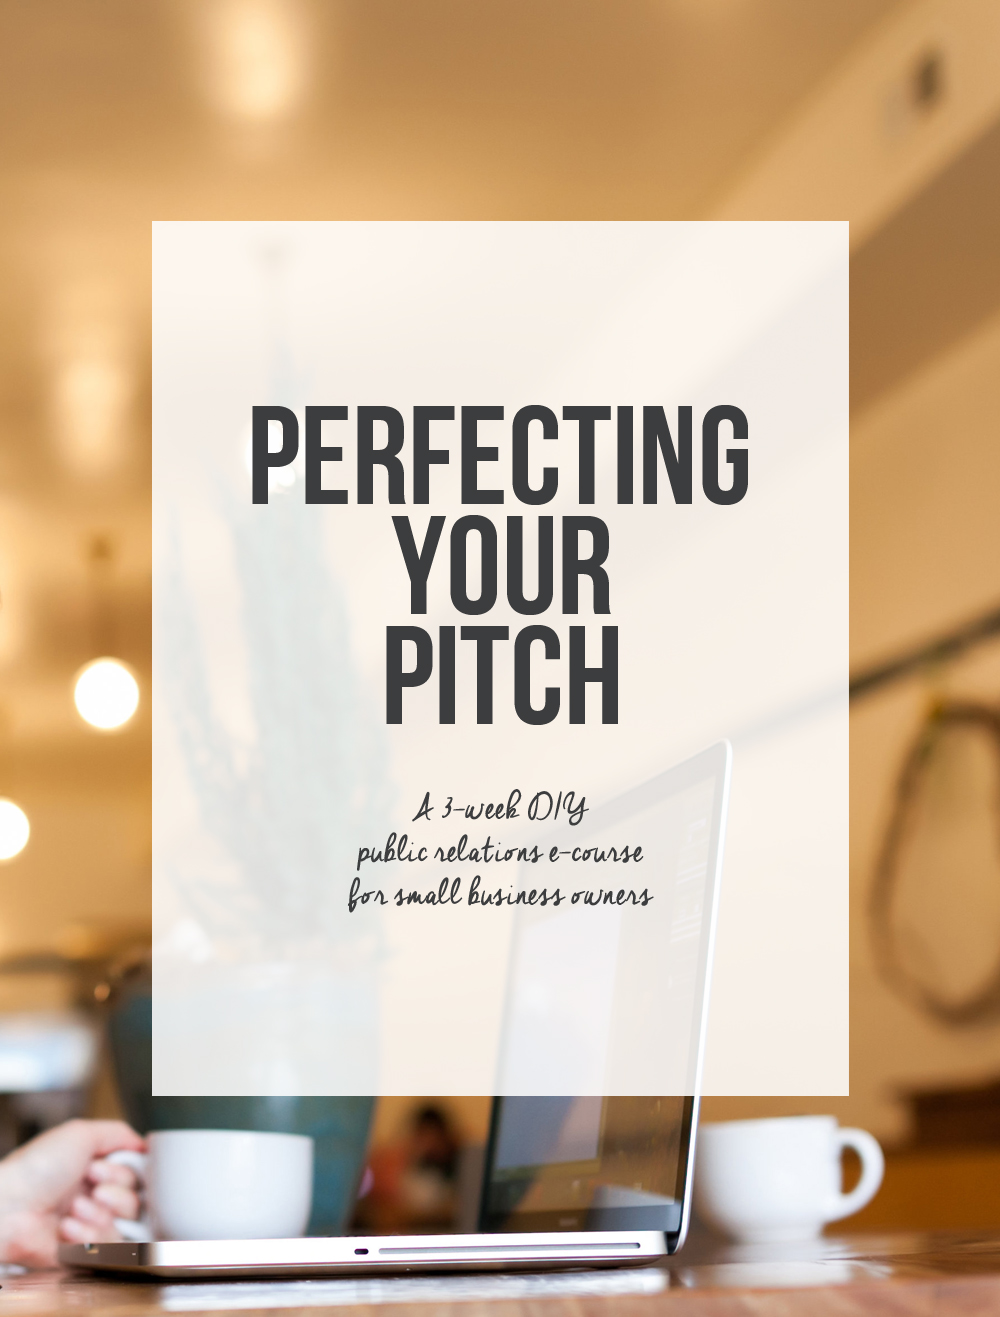 Perfecting Your Pitch: Registration is Now Open!